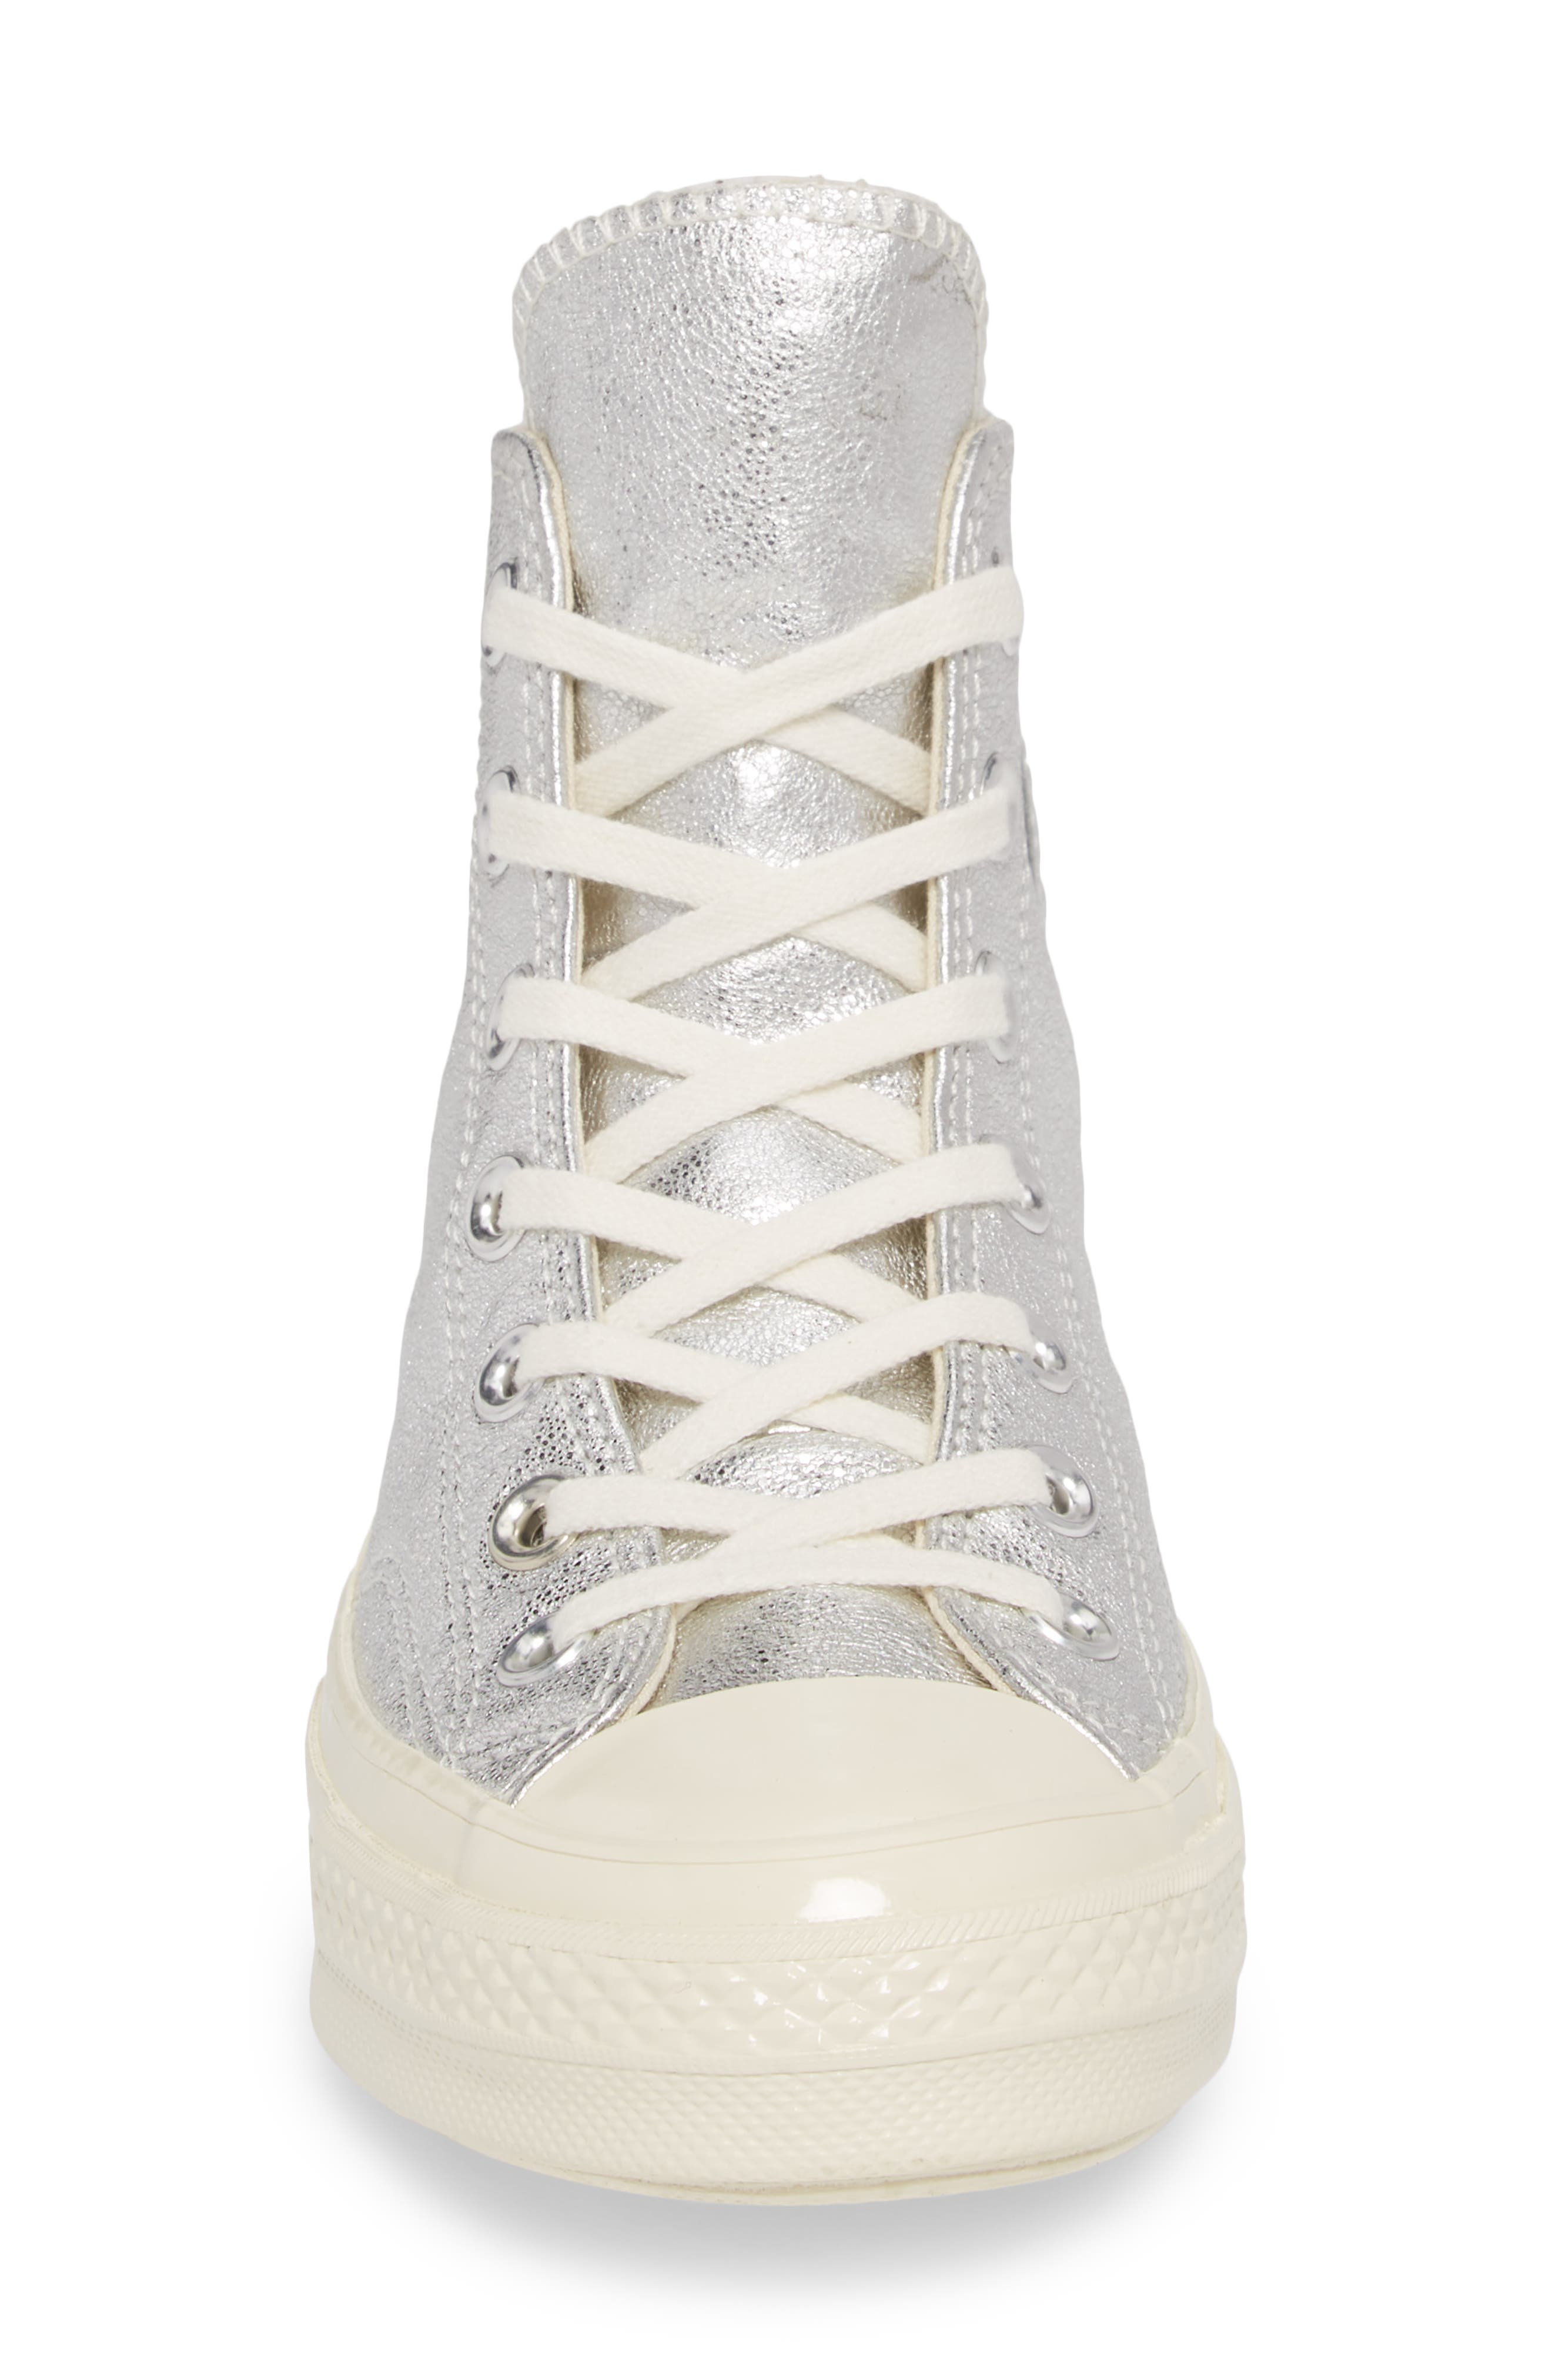 Chuck Taylor<sup>®</sup> All Star<sup>®</sup> Heavy Metal 70 High Top Sneaker,                             Alternate thumbnail 4, color,                             040